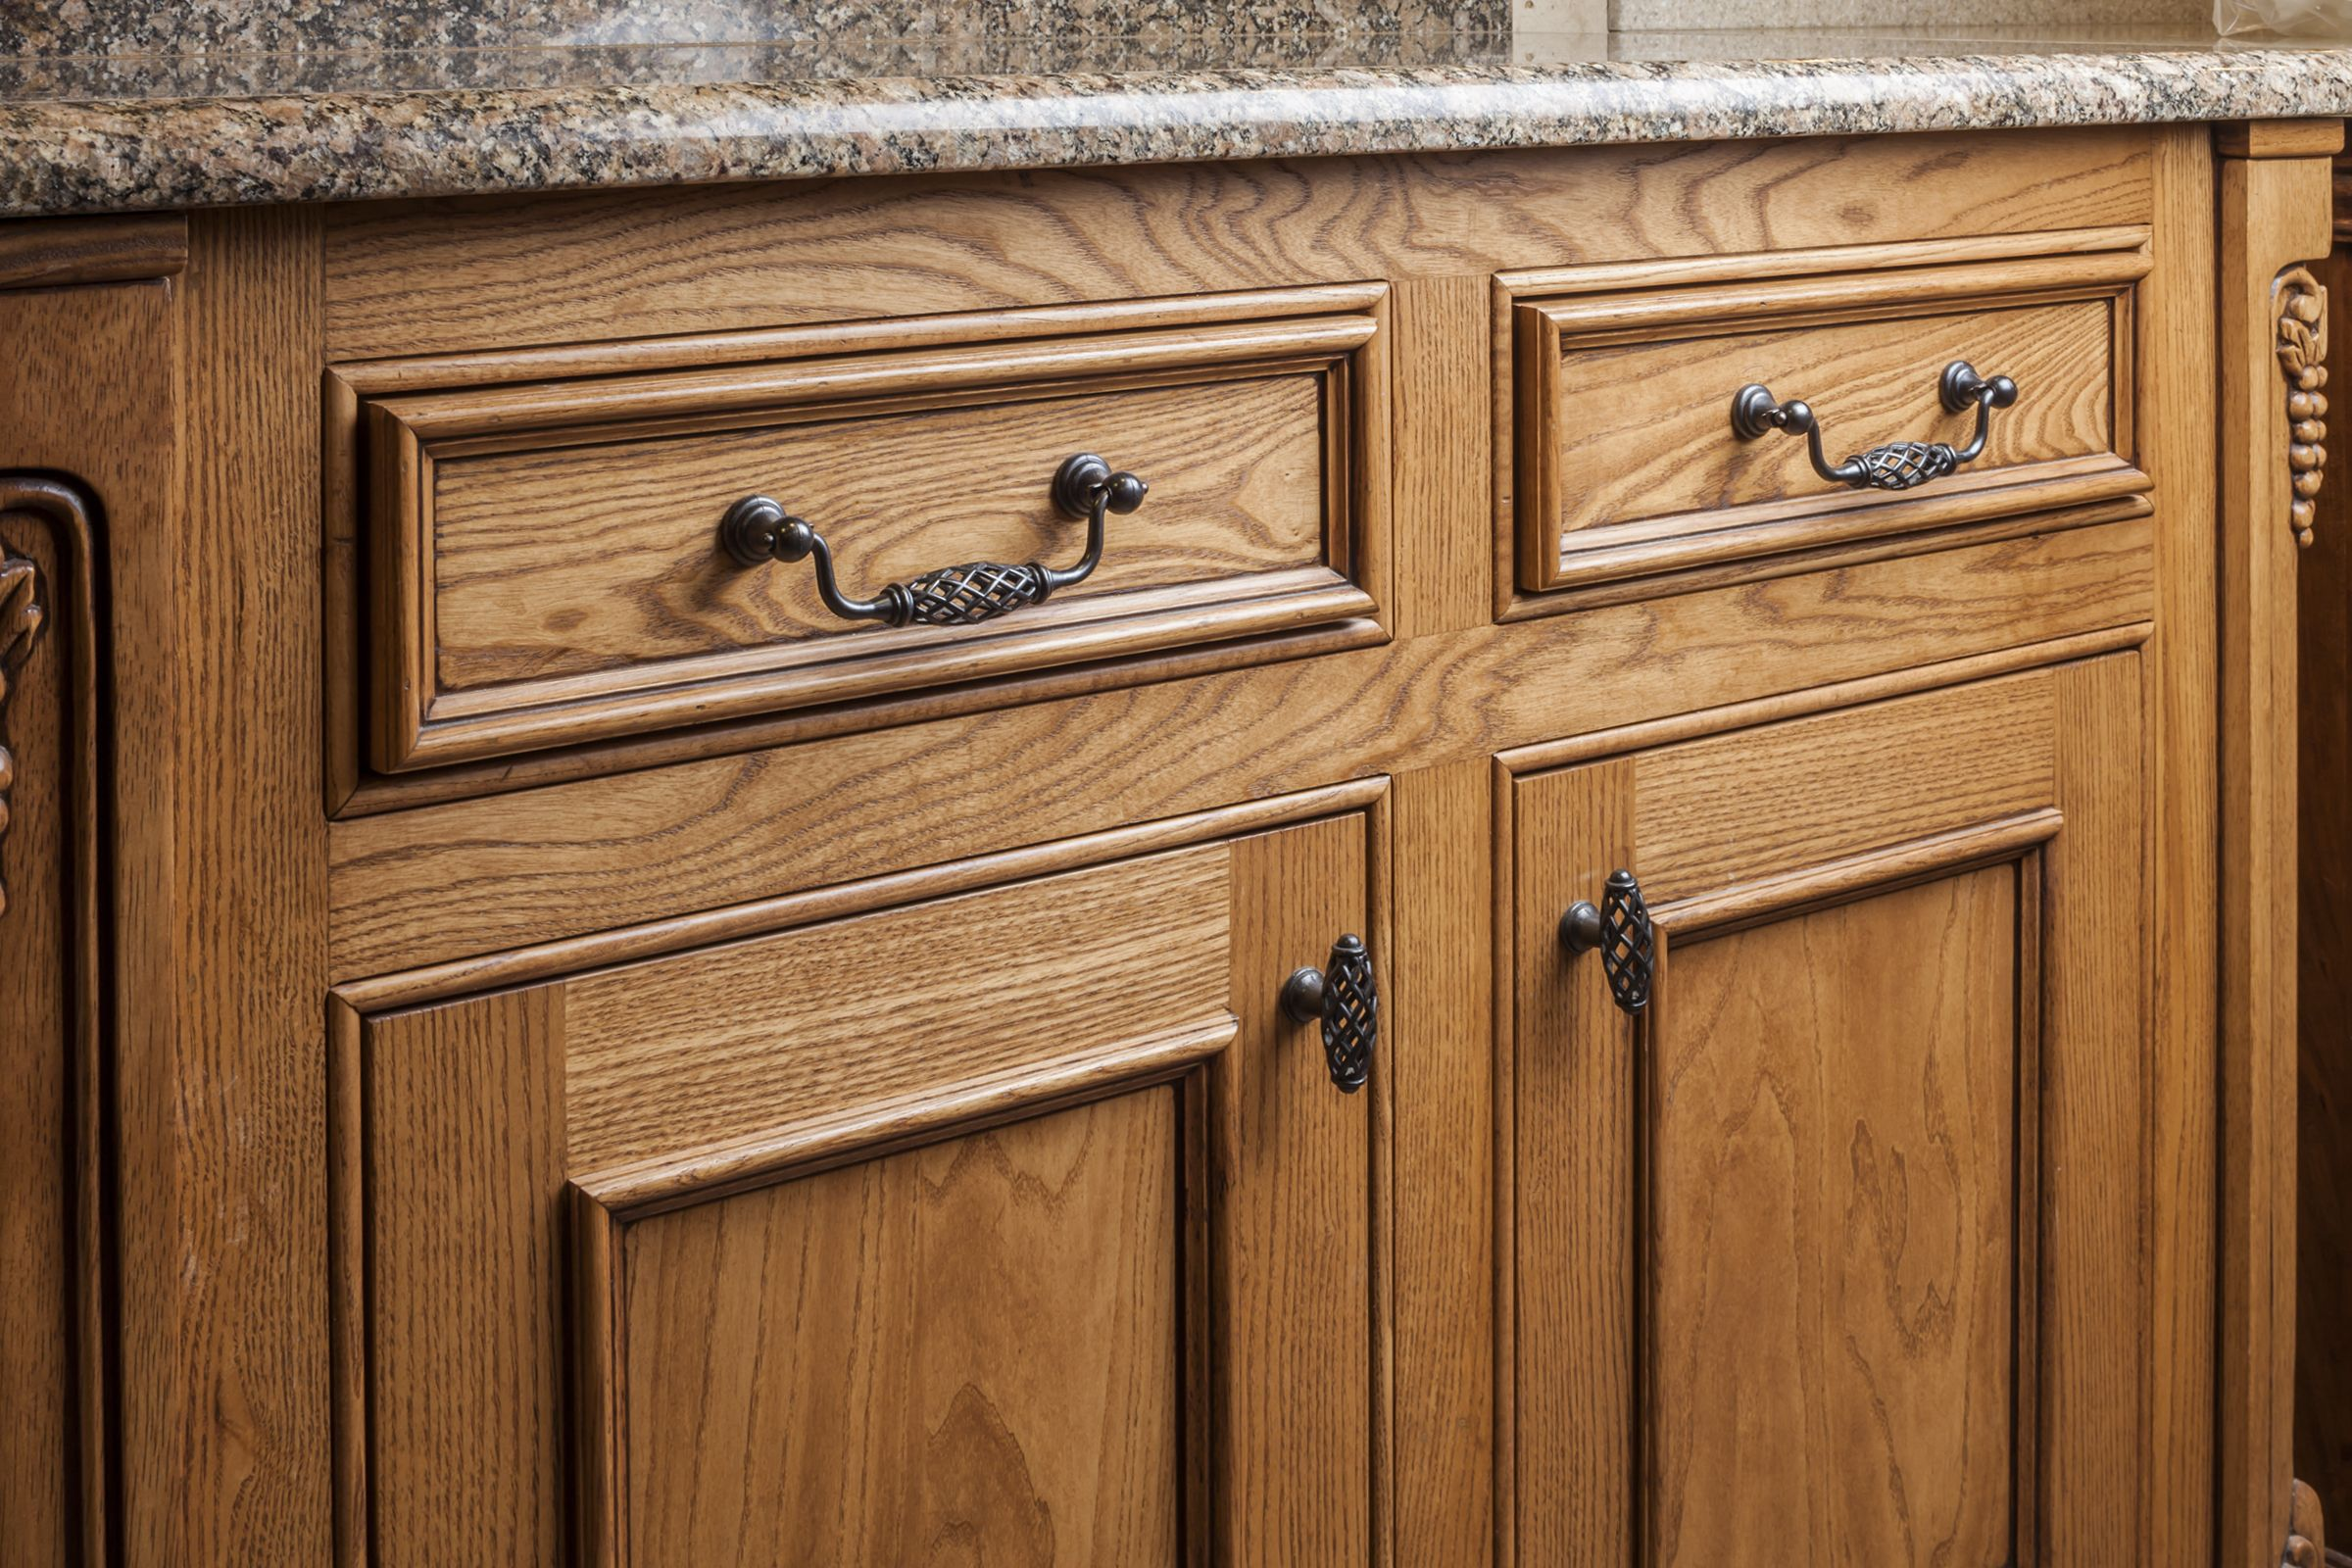 Tuscany cabinet knobs and pulls from Jeffrey Alexander by Hardware